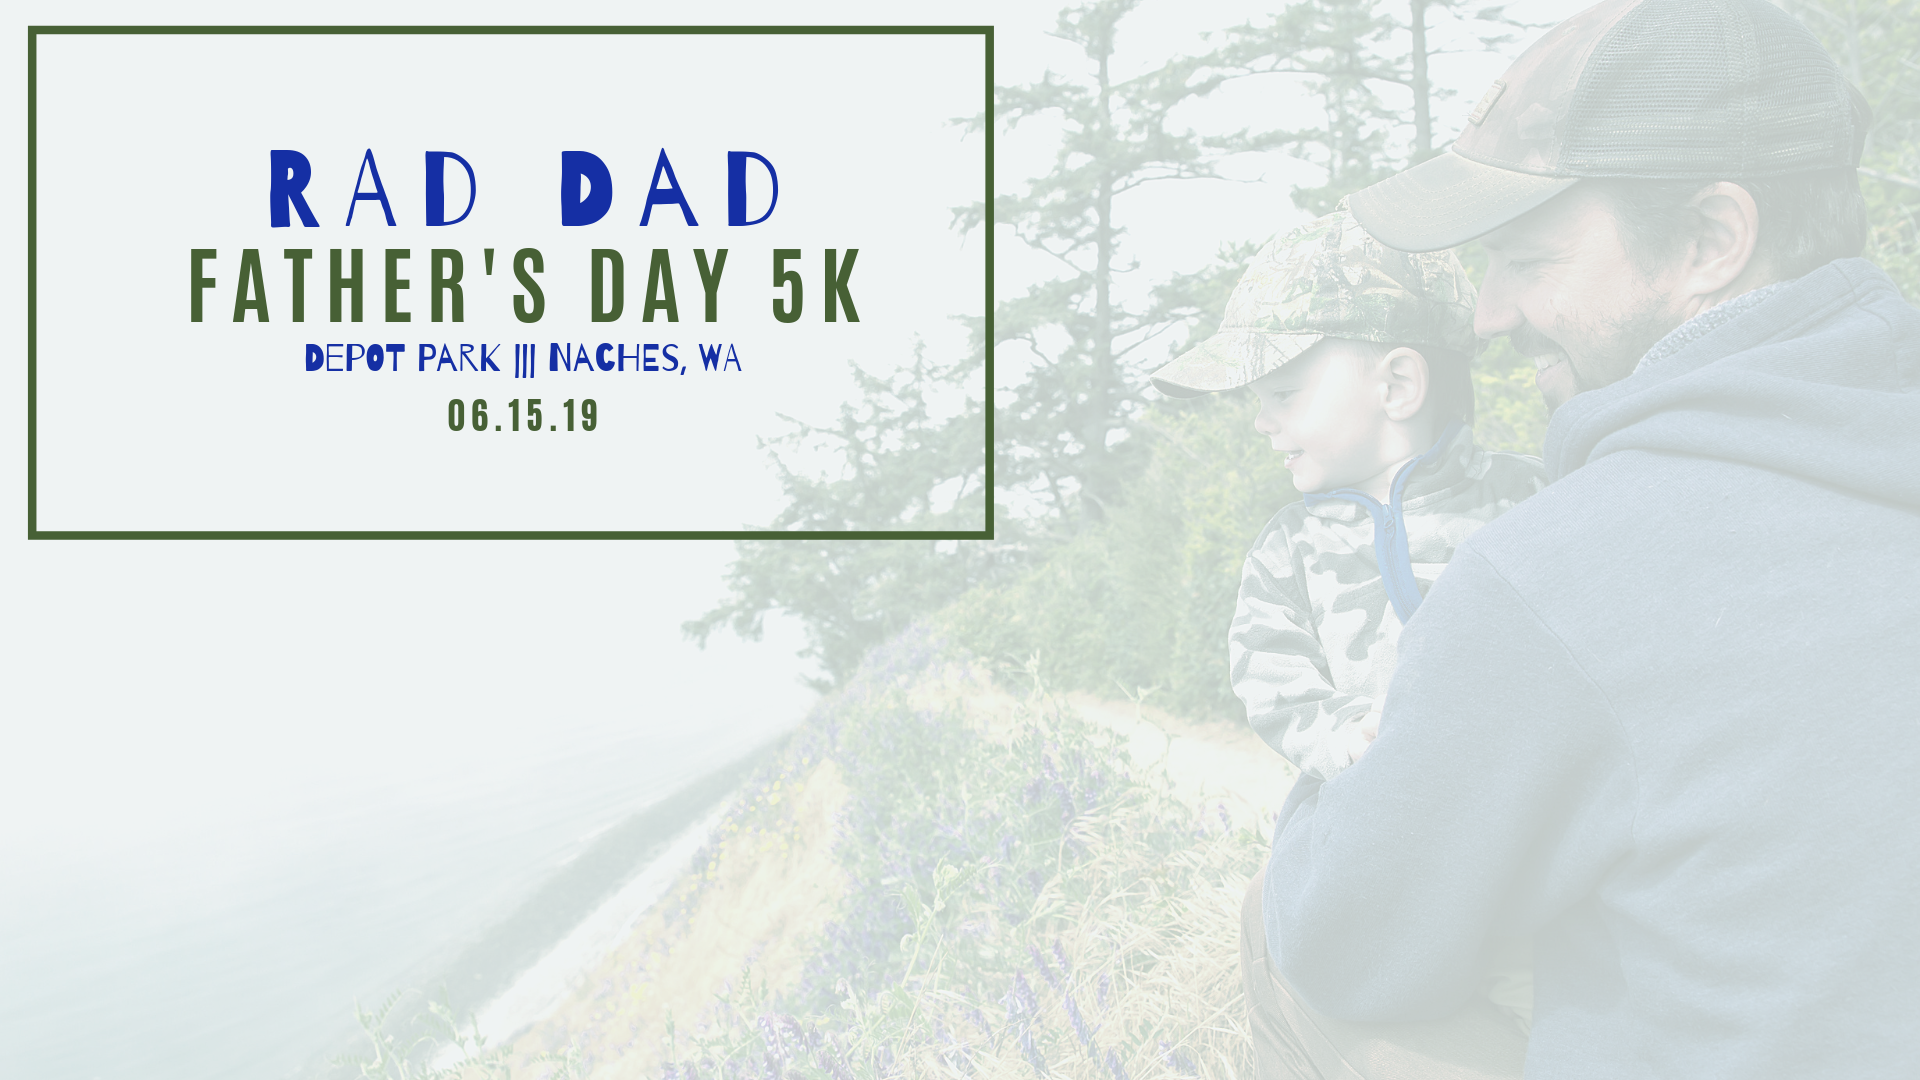 Register for the 2019 Rad Dads Father's Day Weekend 5K